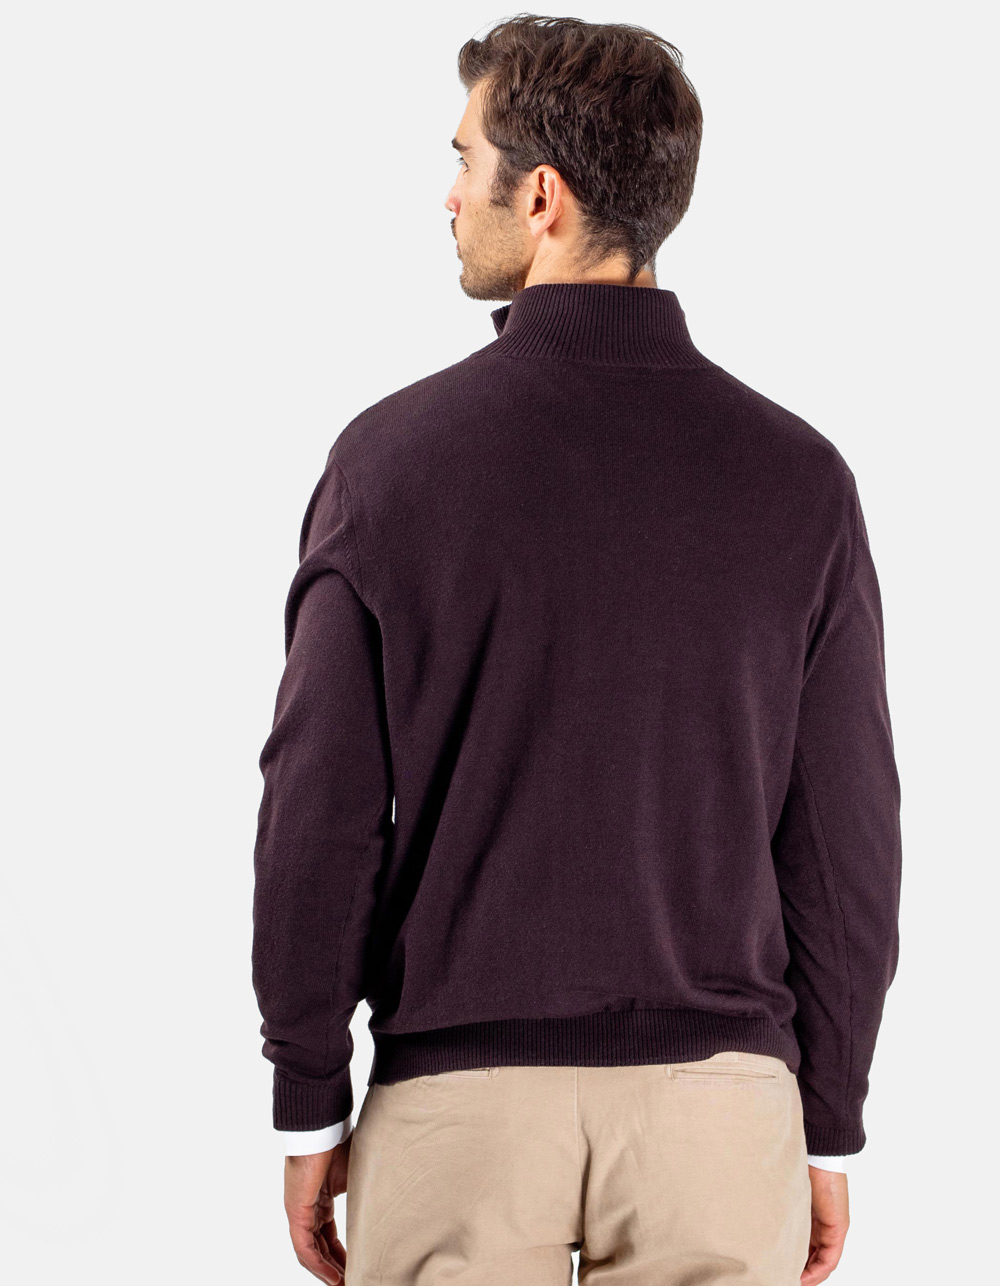 Dark Brown neck sweater with zip - Backside